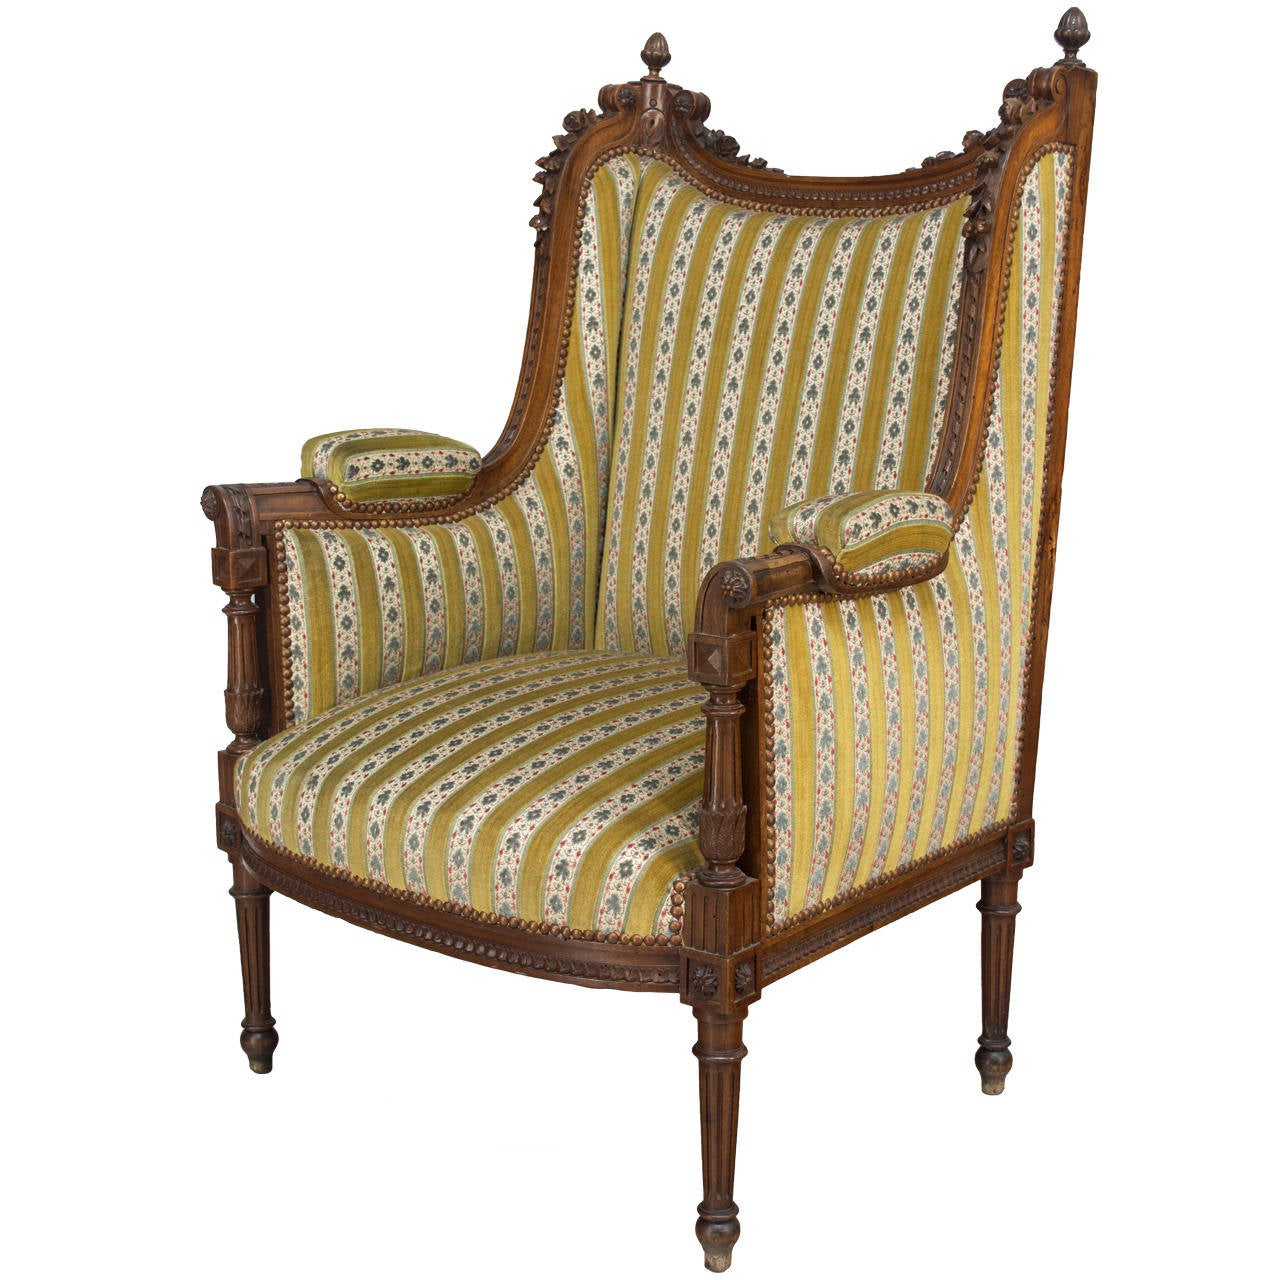 bergere chairs dining chair covers for wedding 19th century french louis xvi style or wing